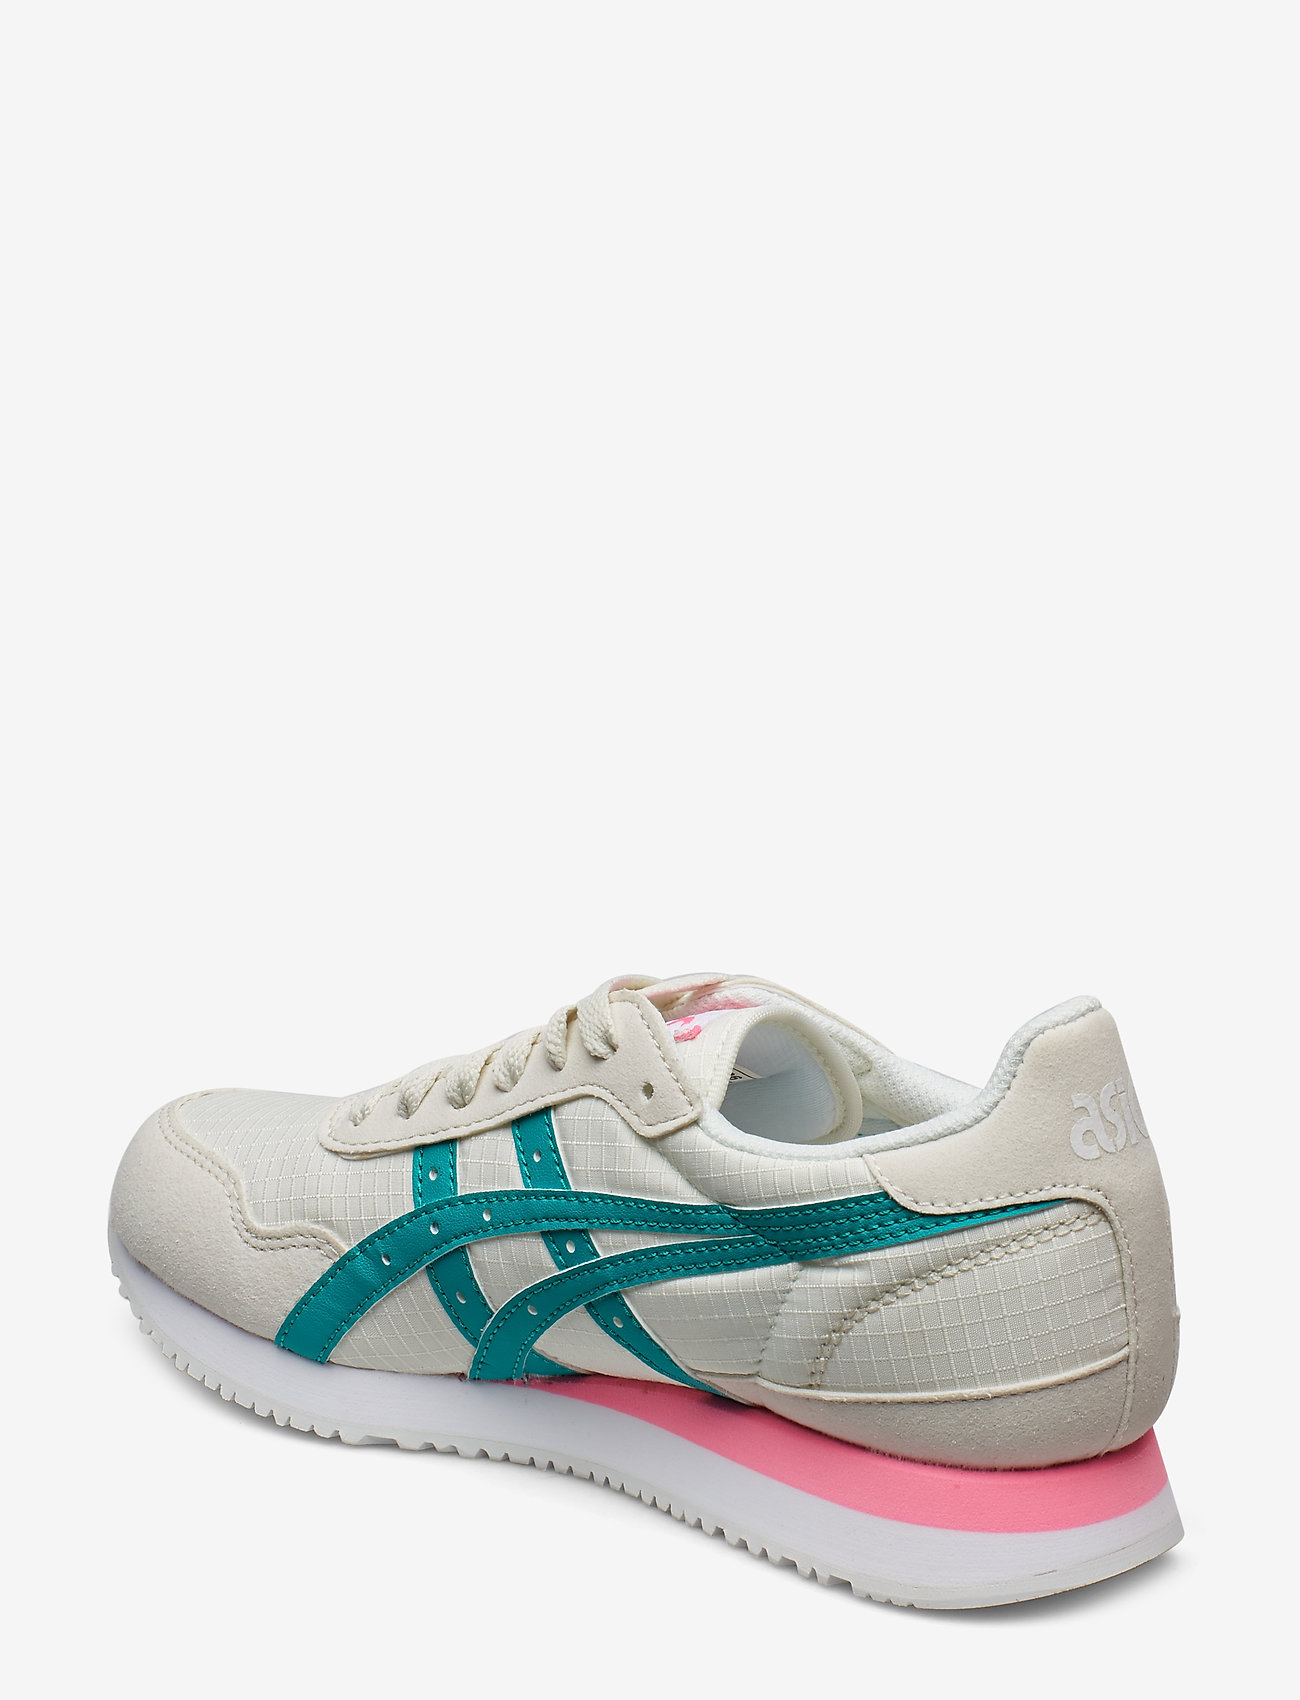 Tiger Runner (Birch/baltic Jewel) - ASICS SportStyle